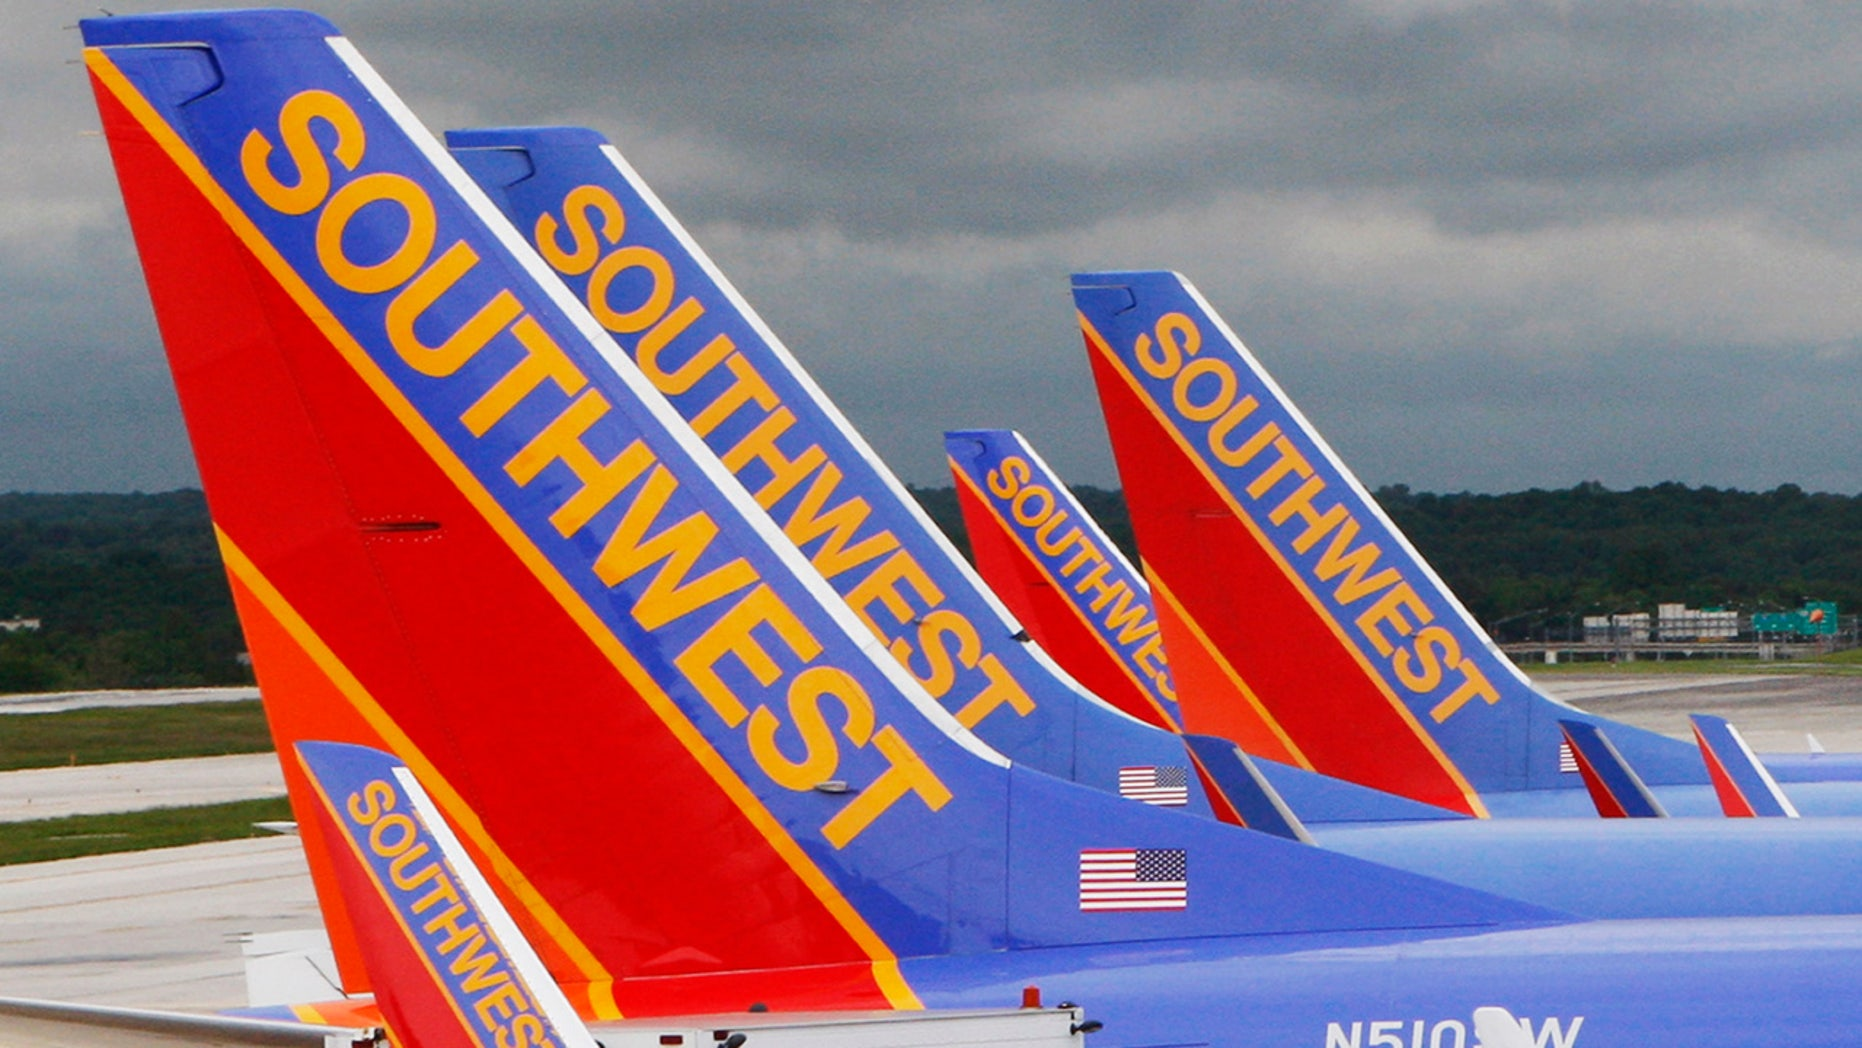 Southwest planes are parked at their gates at Baltimore Washington International Airport in Baltimore.